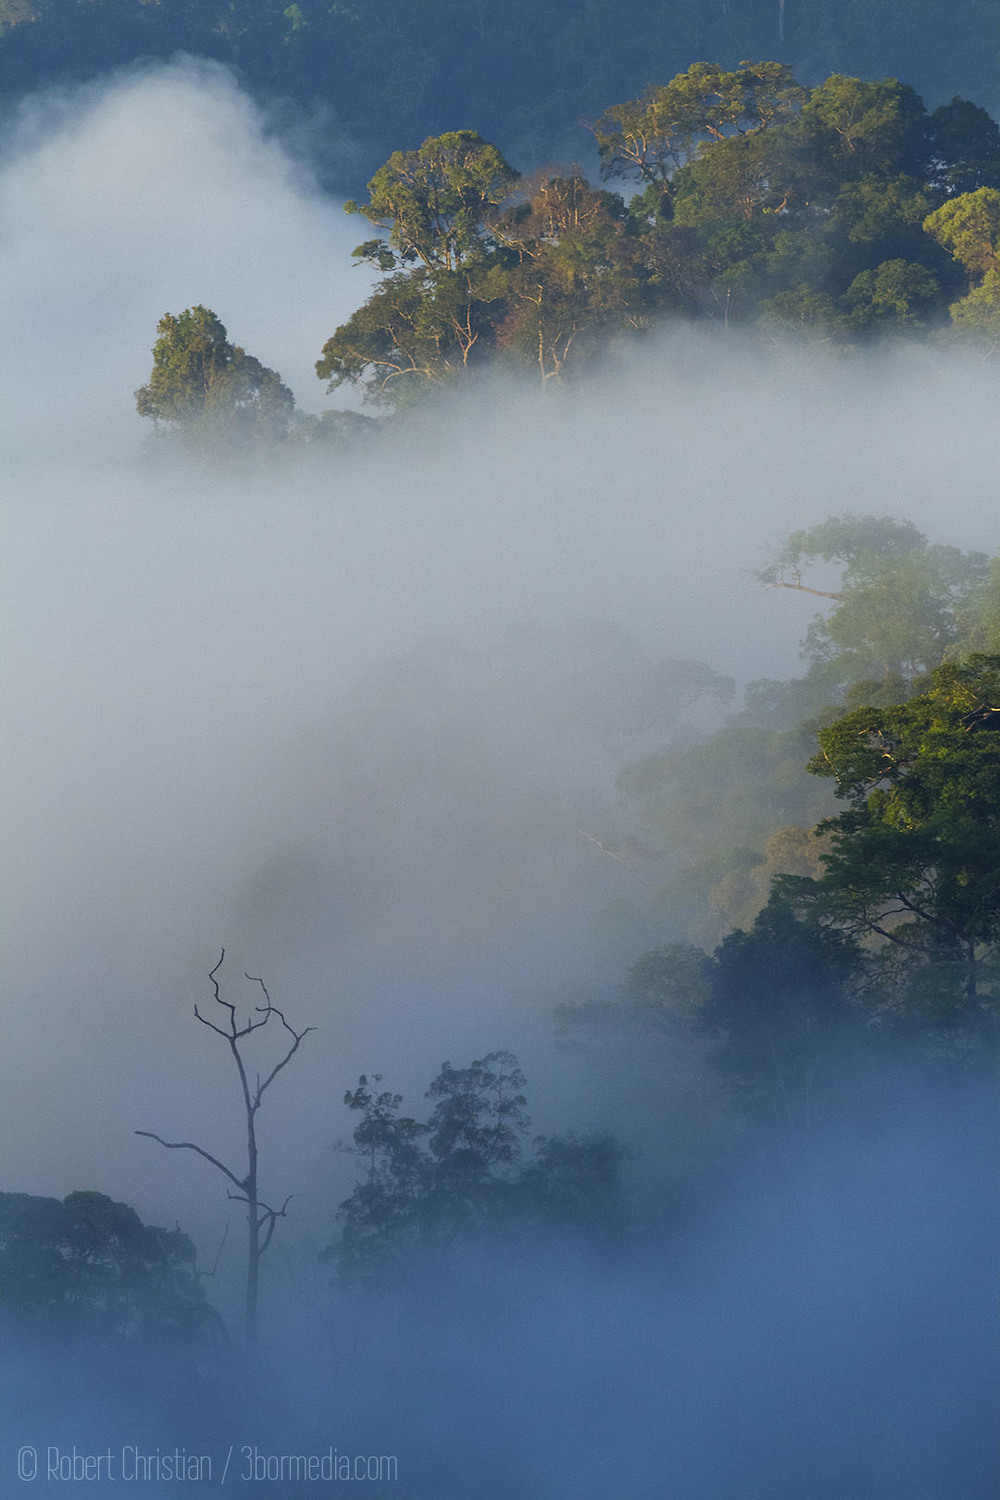 Mist Rising from Canopy